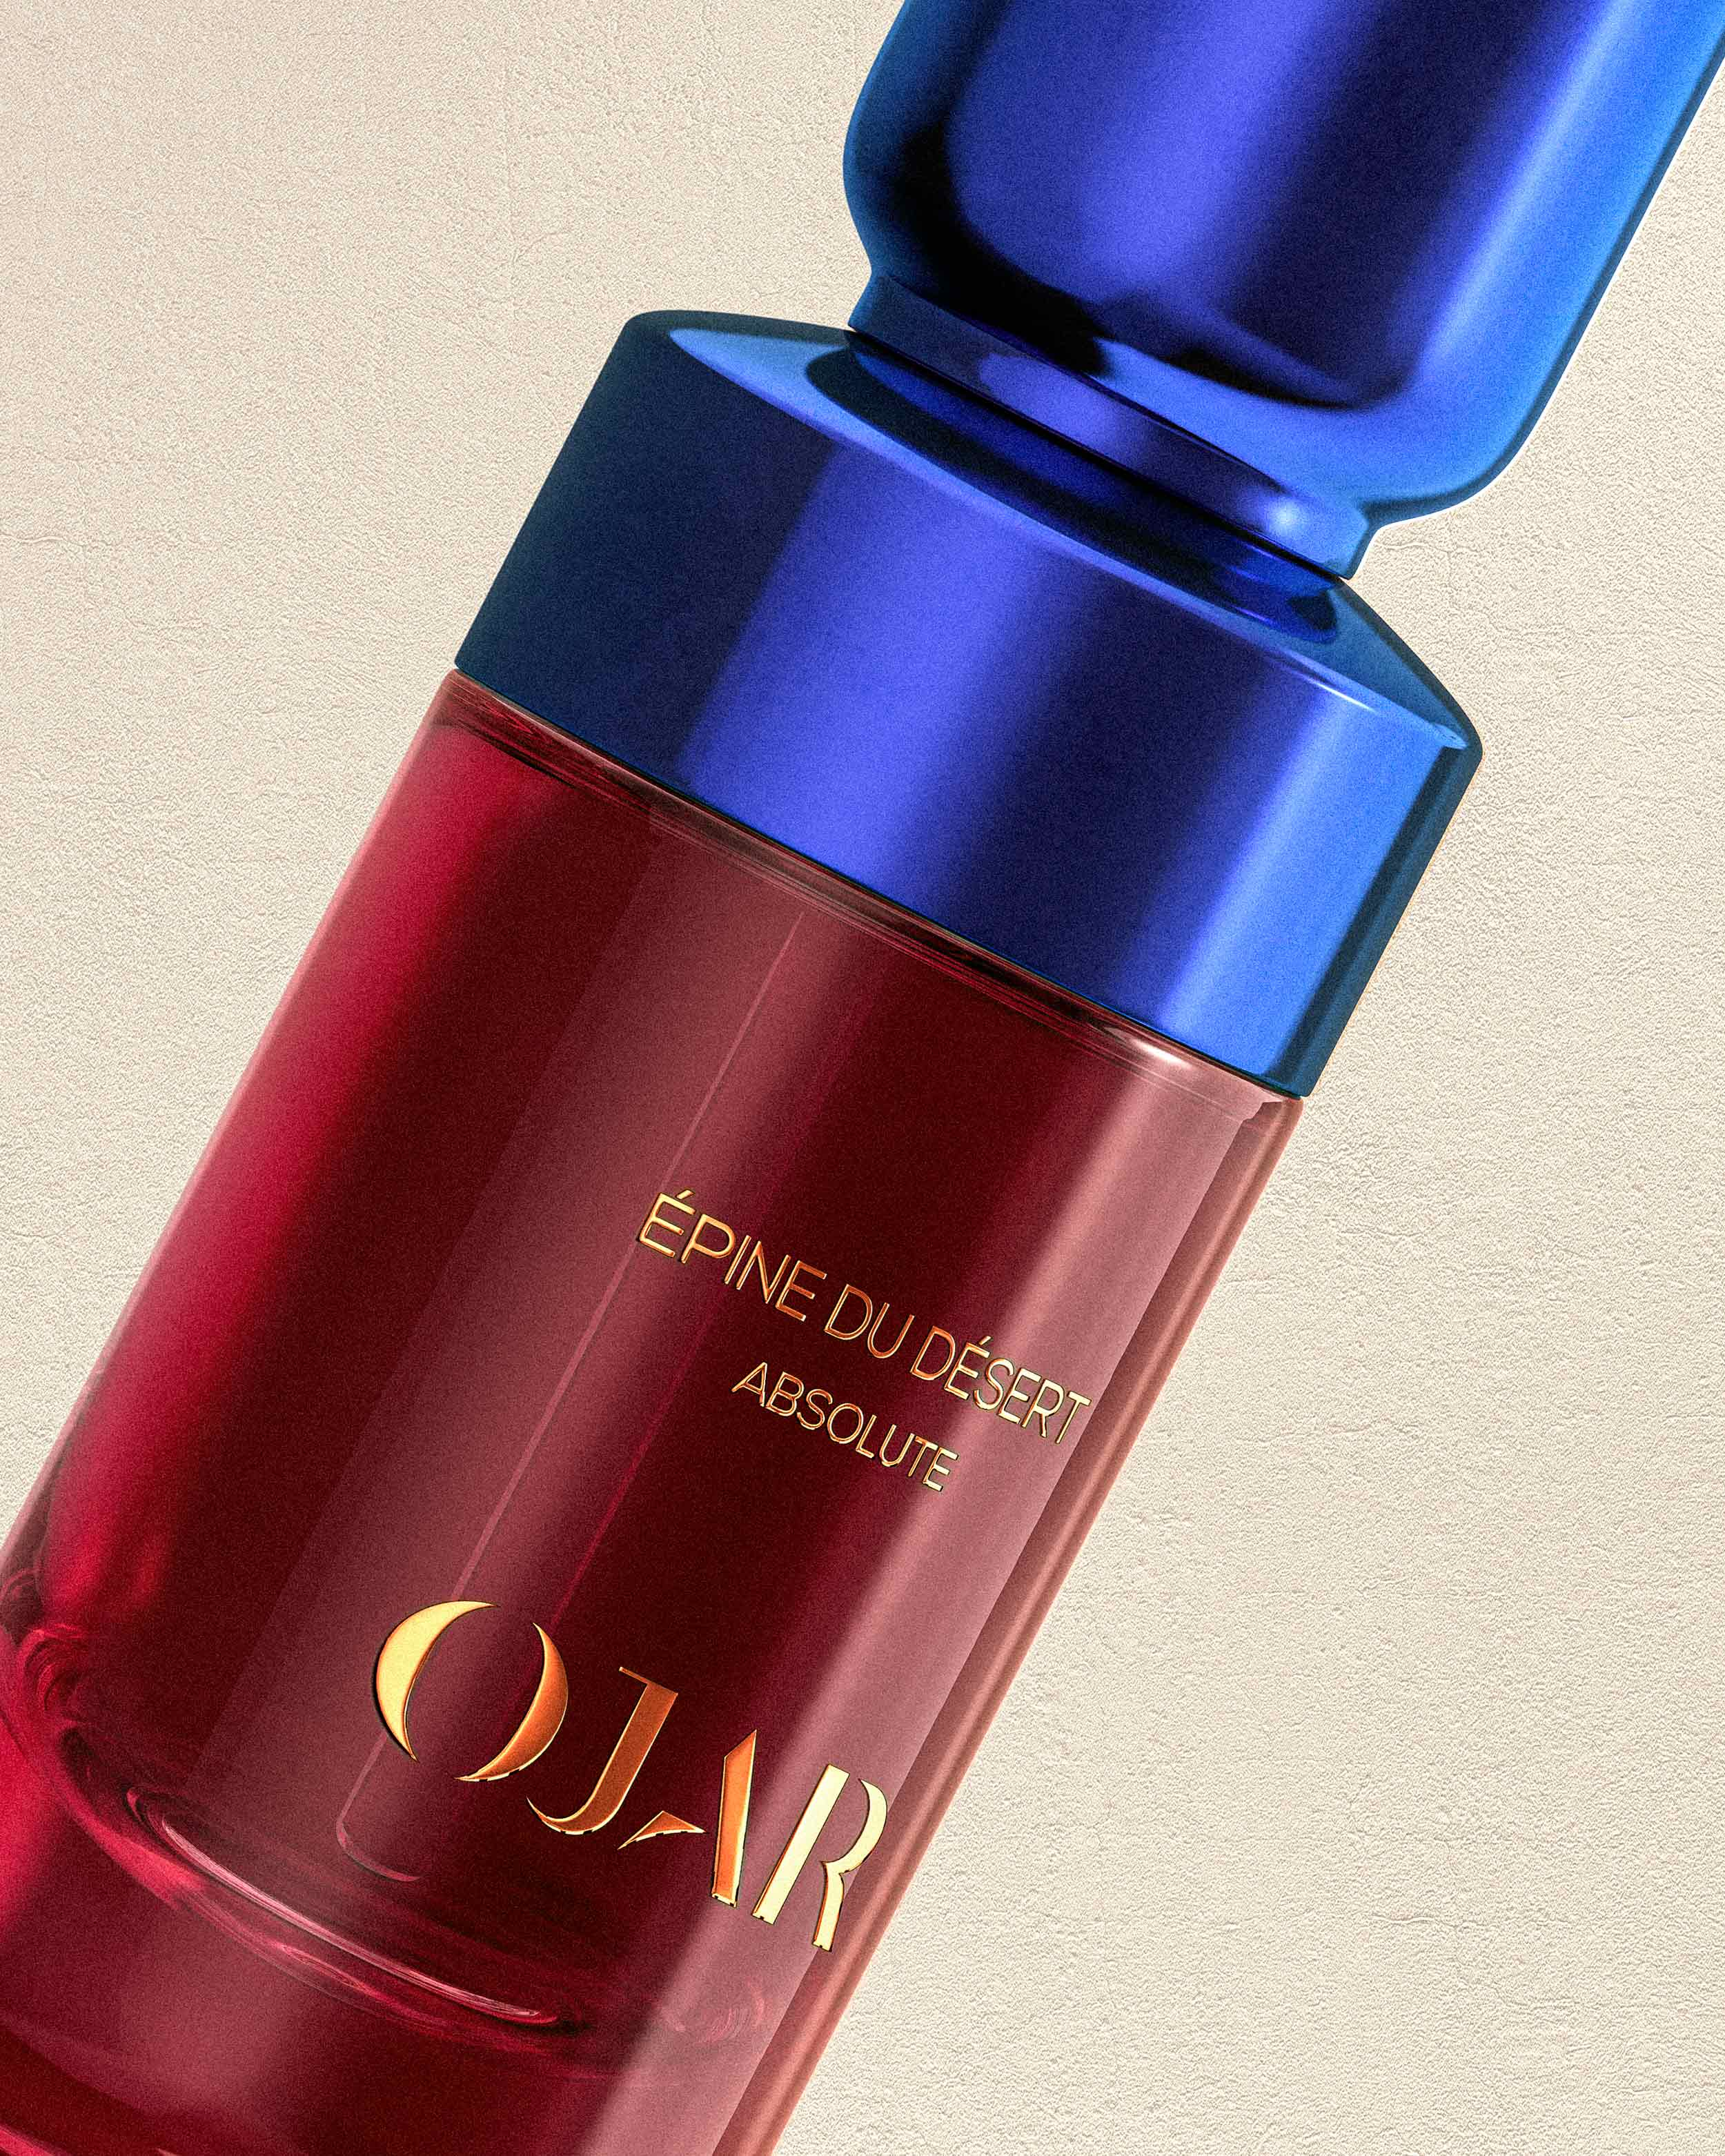 OJAR Absolute Epine Du Desert Perfume Close Up